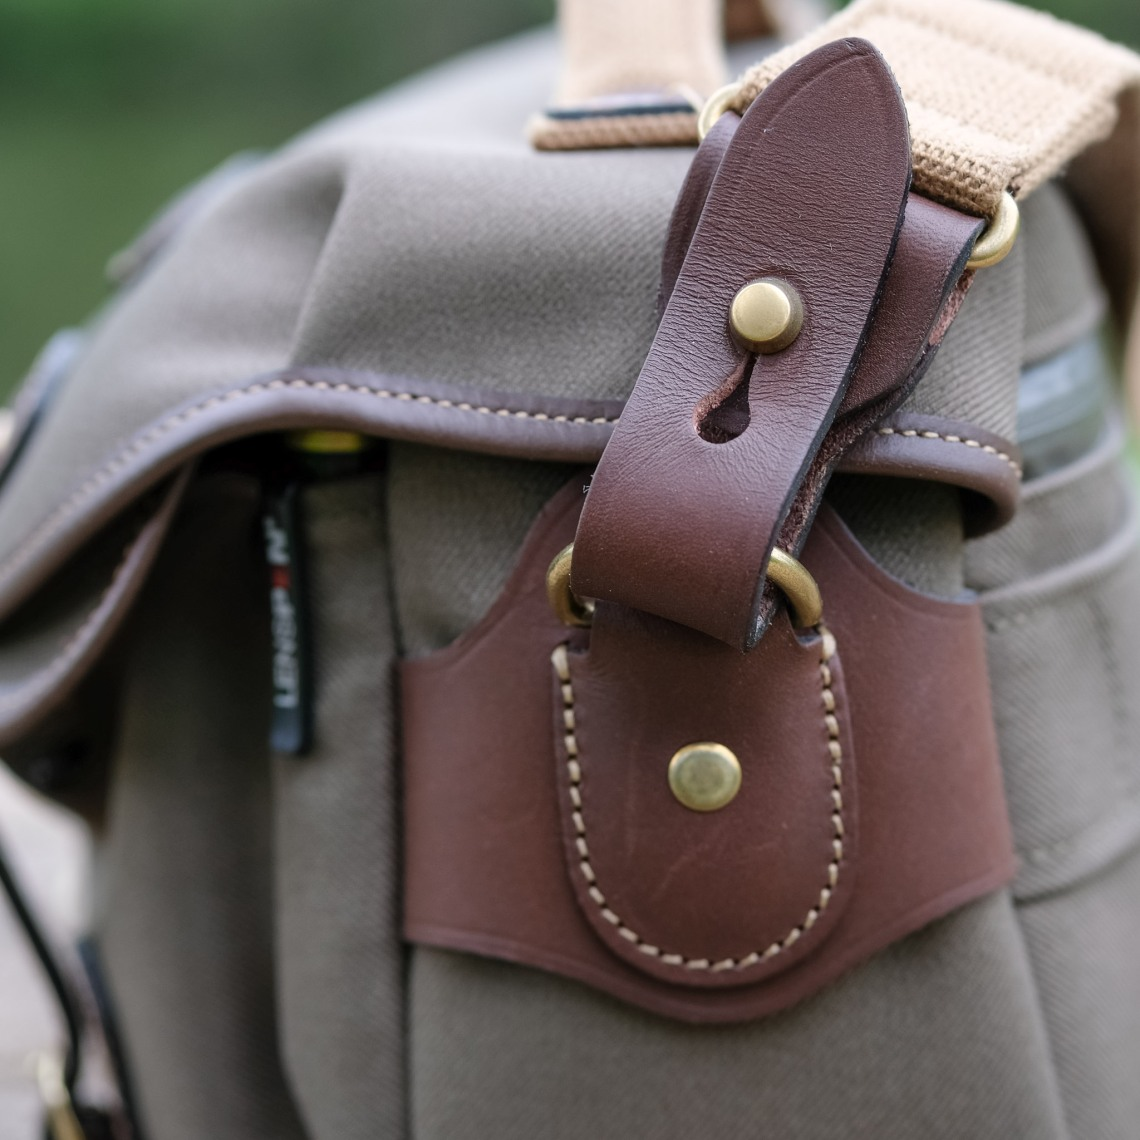 Billingham Hadley Small Pro The Full Review Philippe Castagna Shoulder Bag Khaki Chocolate Leather Another Improvement Is Coming From One Strap This Still Adjustable But Fully Removable Thanks To A Beautiful Piece Of